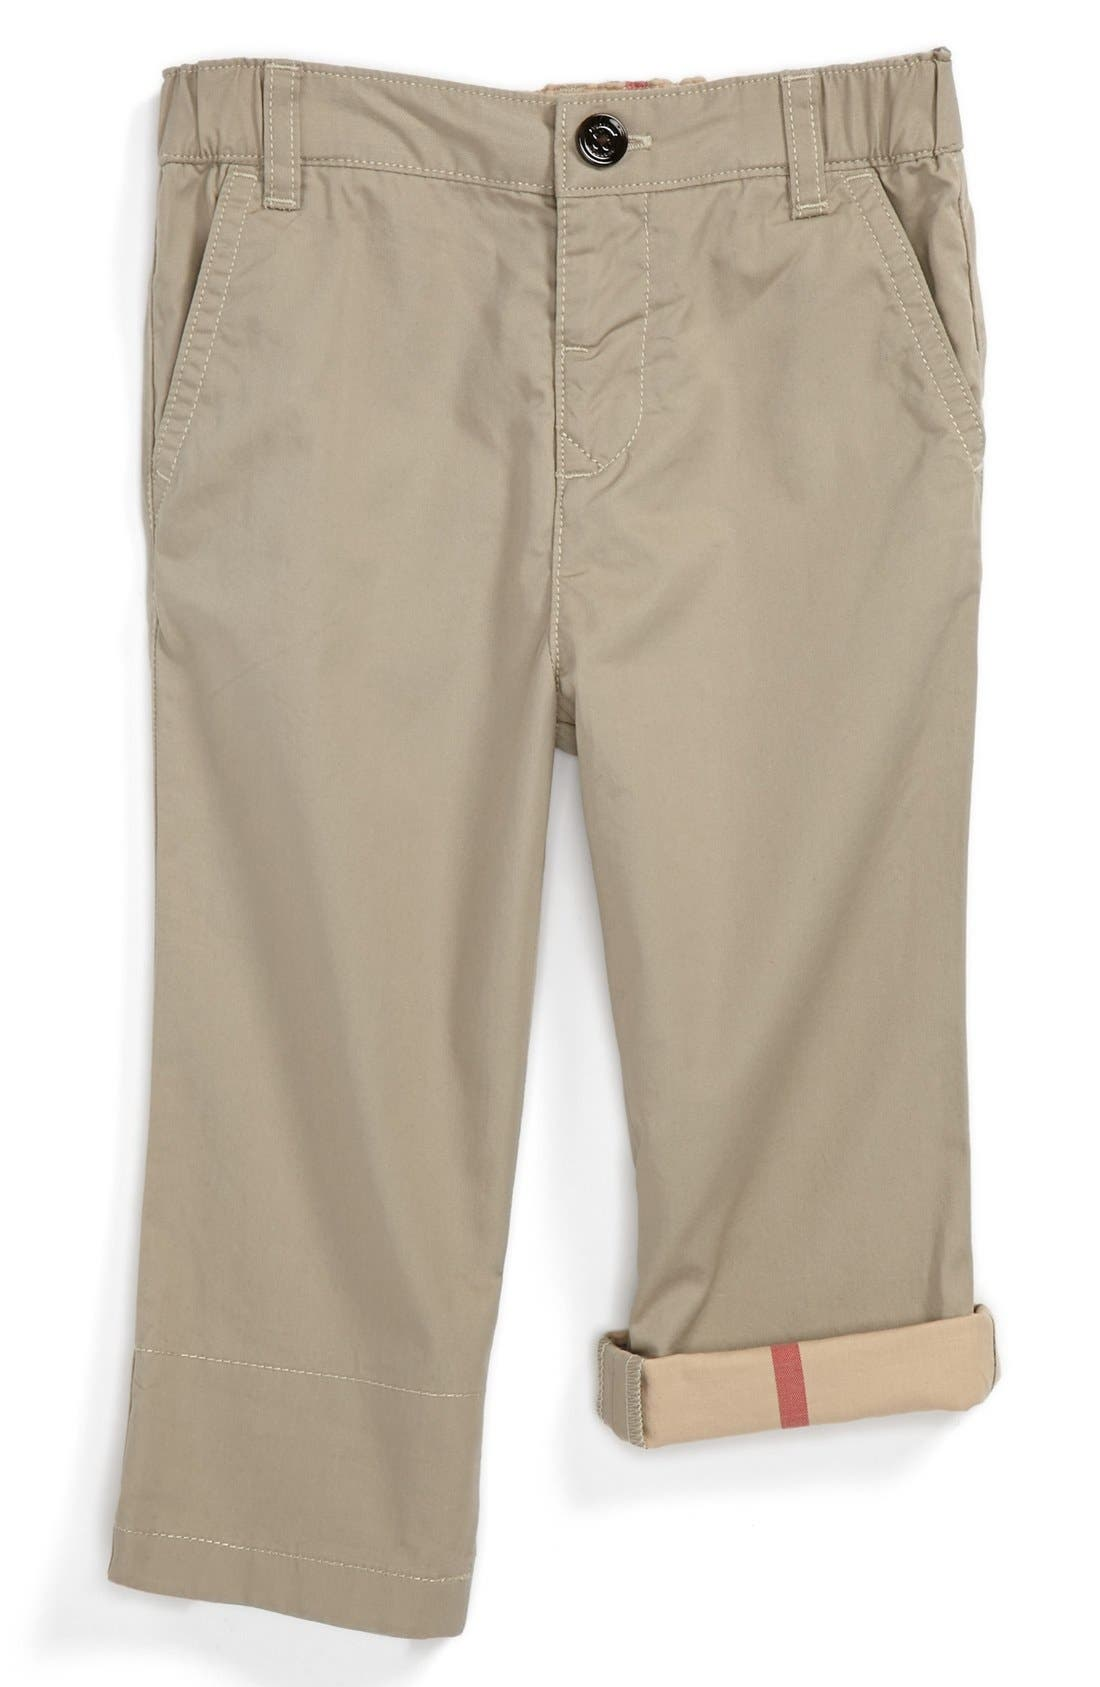 Alternate Image 1 Selected - Burberry 'Ricky' Check Lined Roll Cuff Pants (Baby Boys)